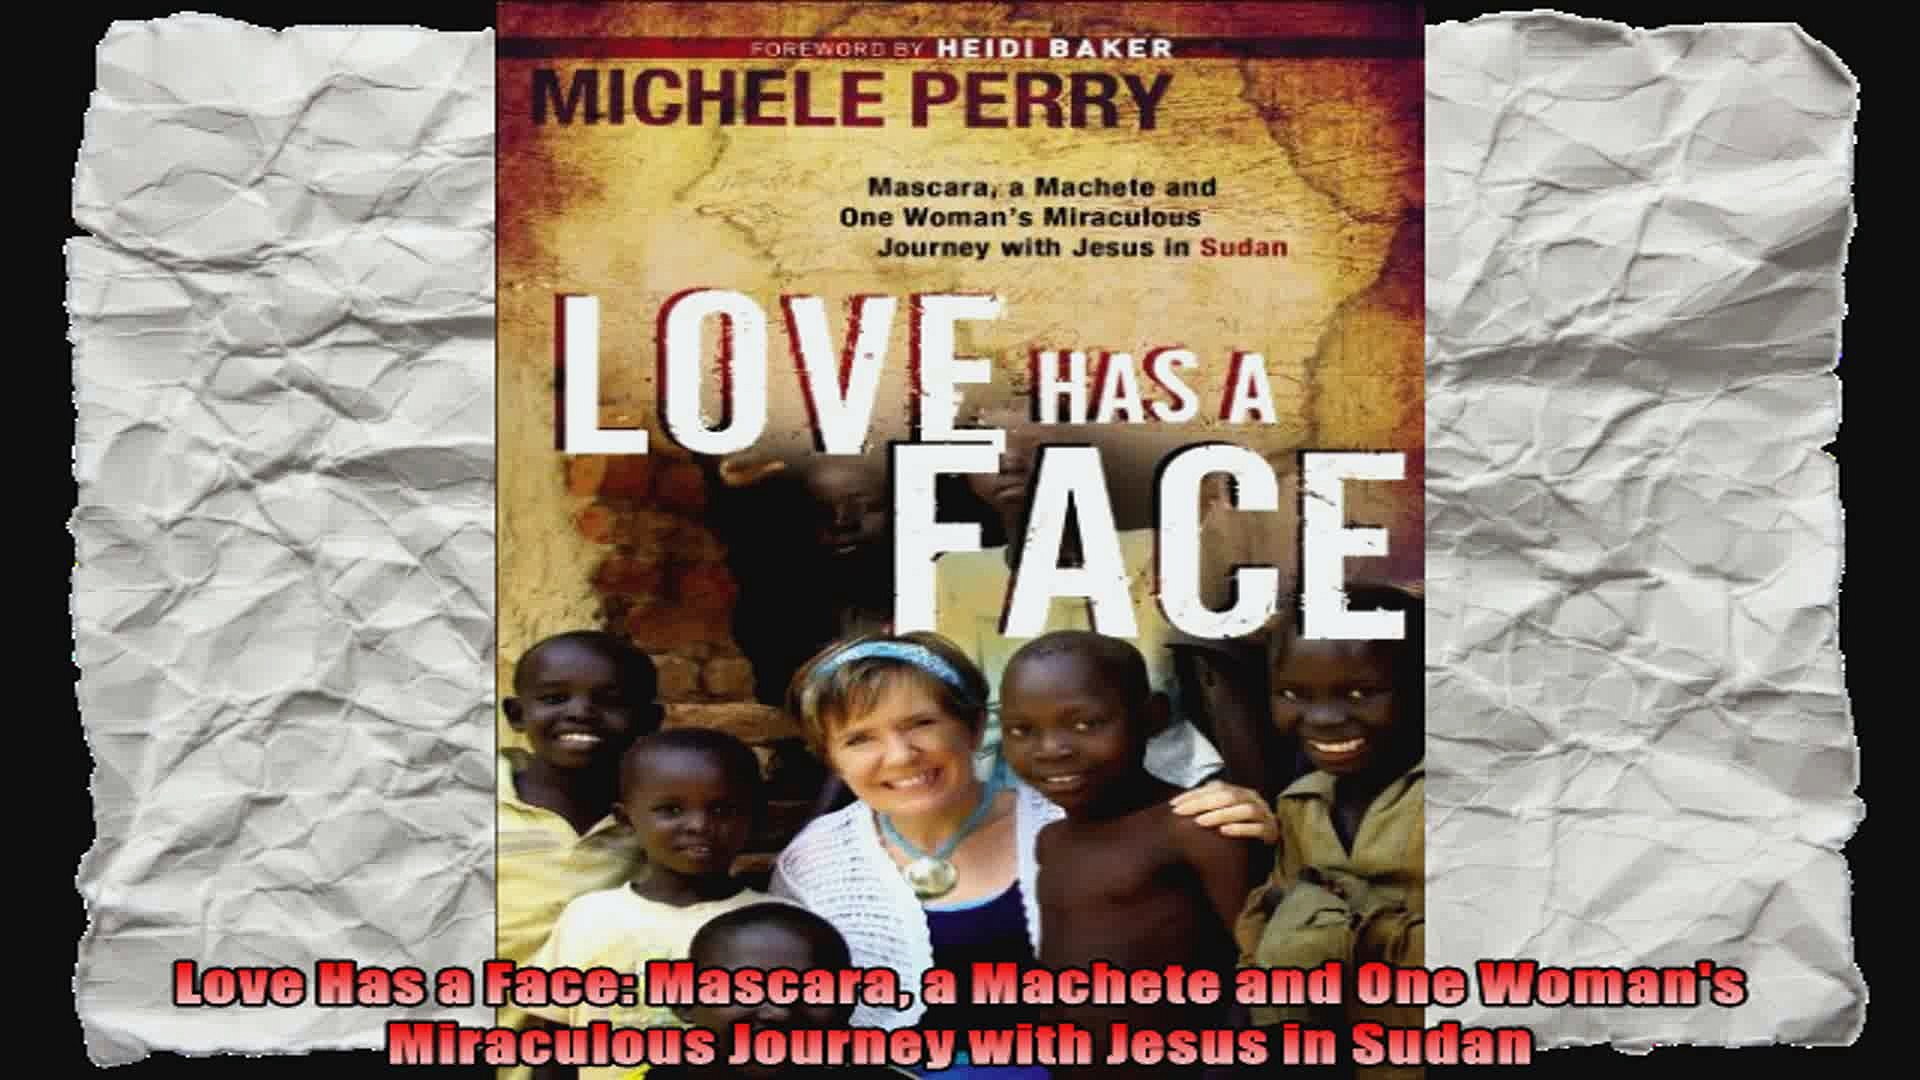 Love Has a Face Mascara a Machete and One Womans Miraculous Journey with Jesus in Sudan